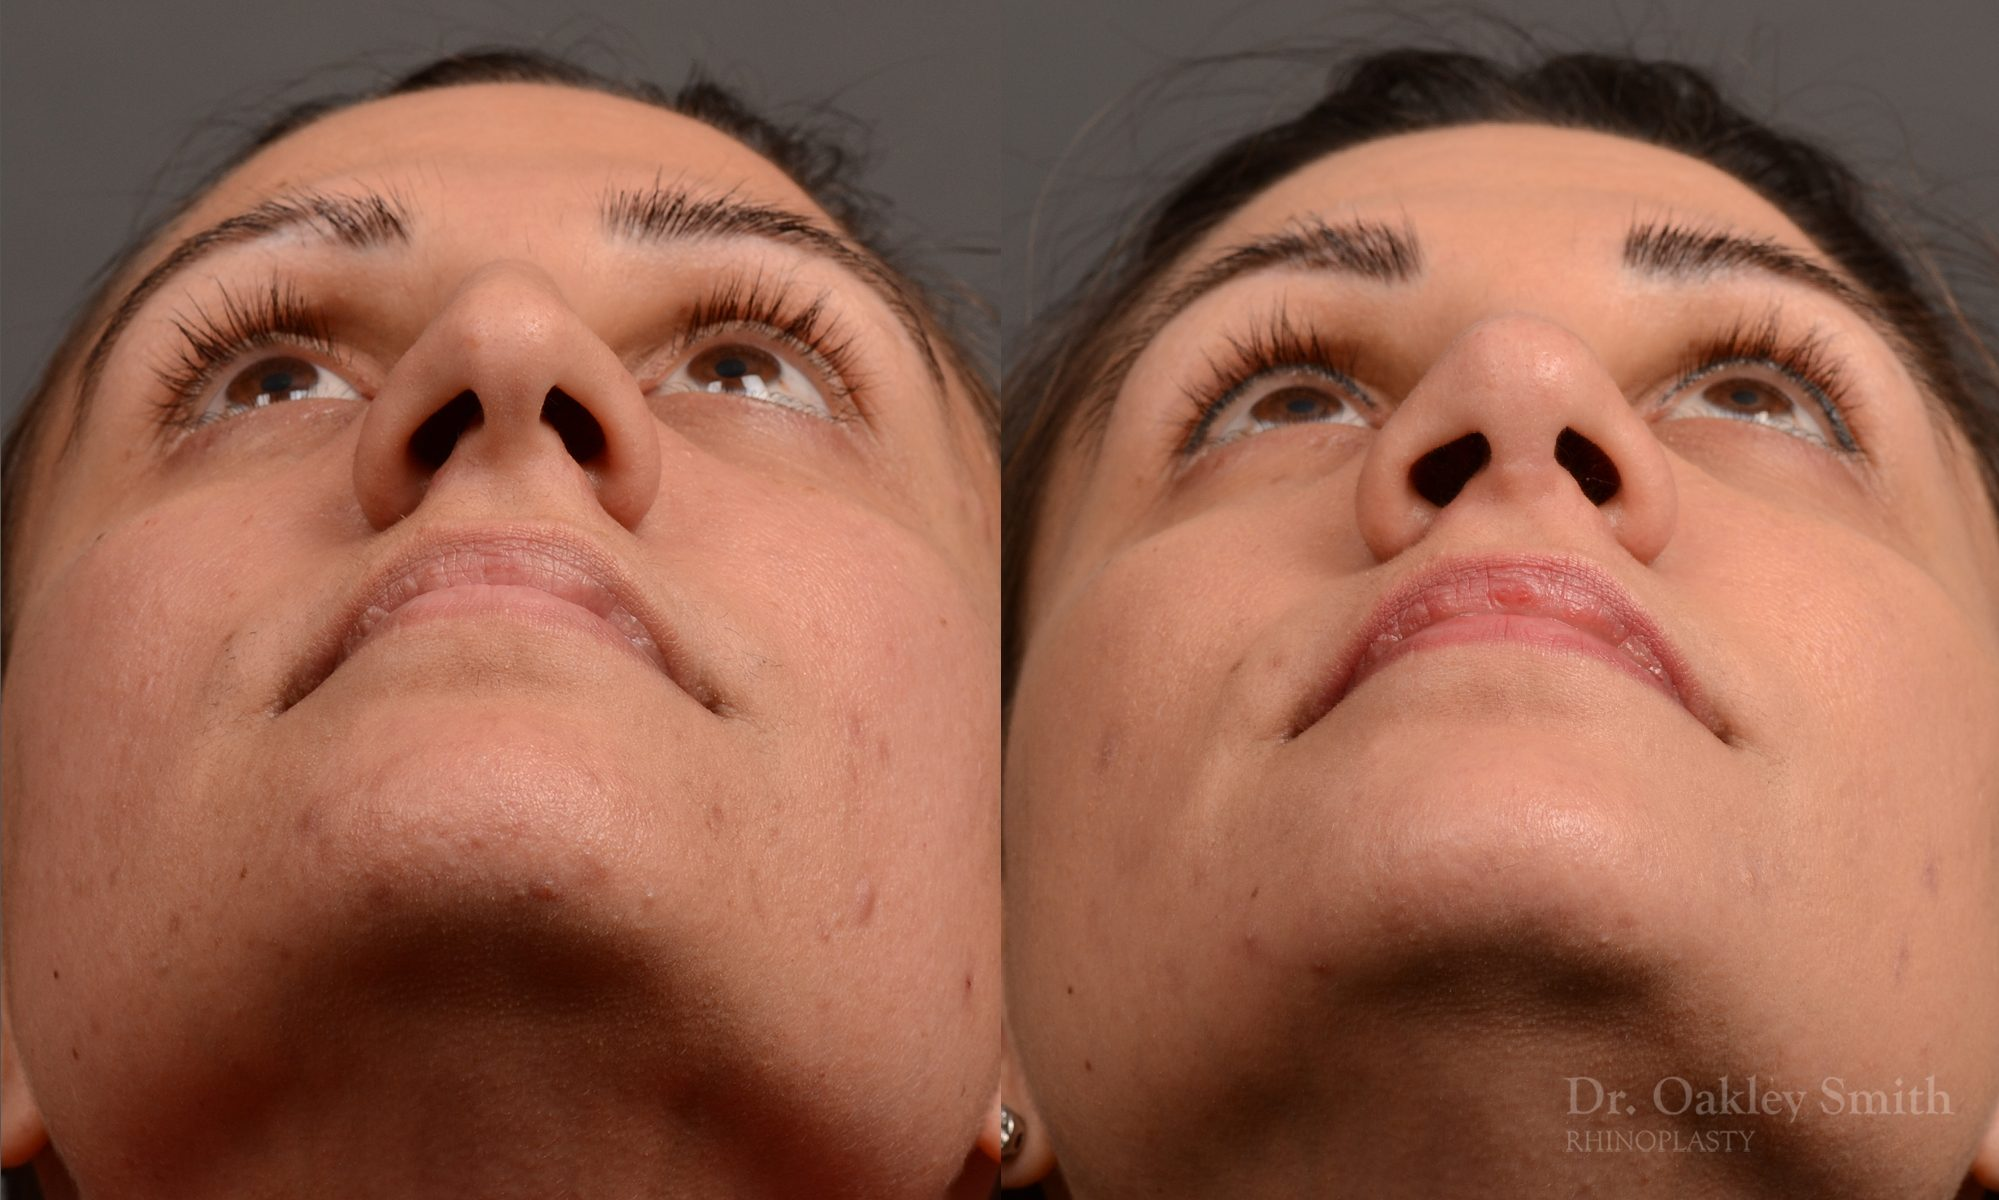 Rhinoplasty - Rhinoplasty Before and After Case 351